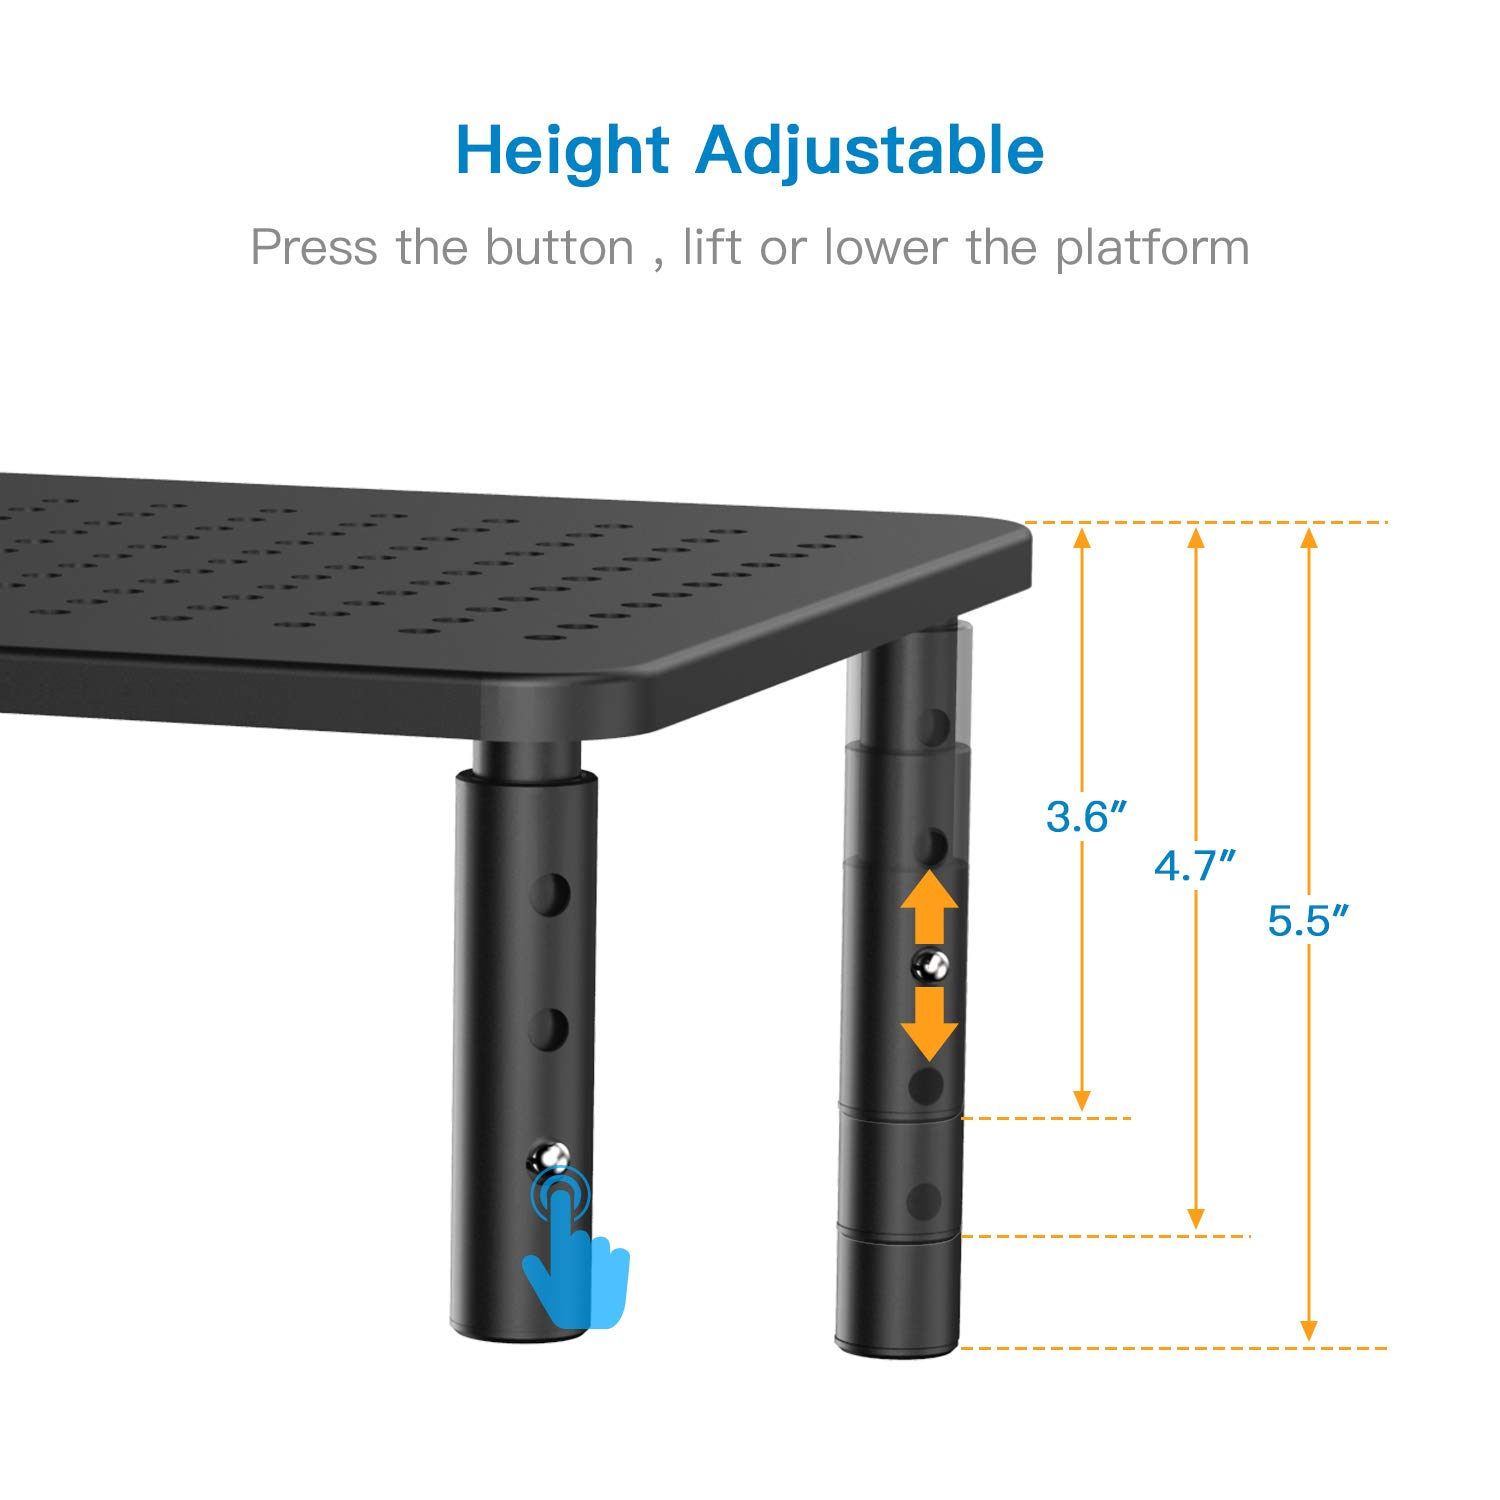 Monitor Stand Riser - 3 Height Adjustable Monitor Stand for Laptop, Computer, iMac, PC, Printer, Desktop Ergonomic Metal Monitor Riser Stand with Mesh Platform for Airflow by HUANUO by HUANUO (Image #2)